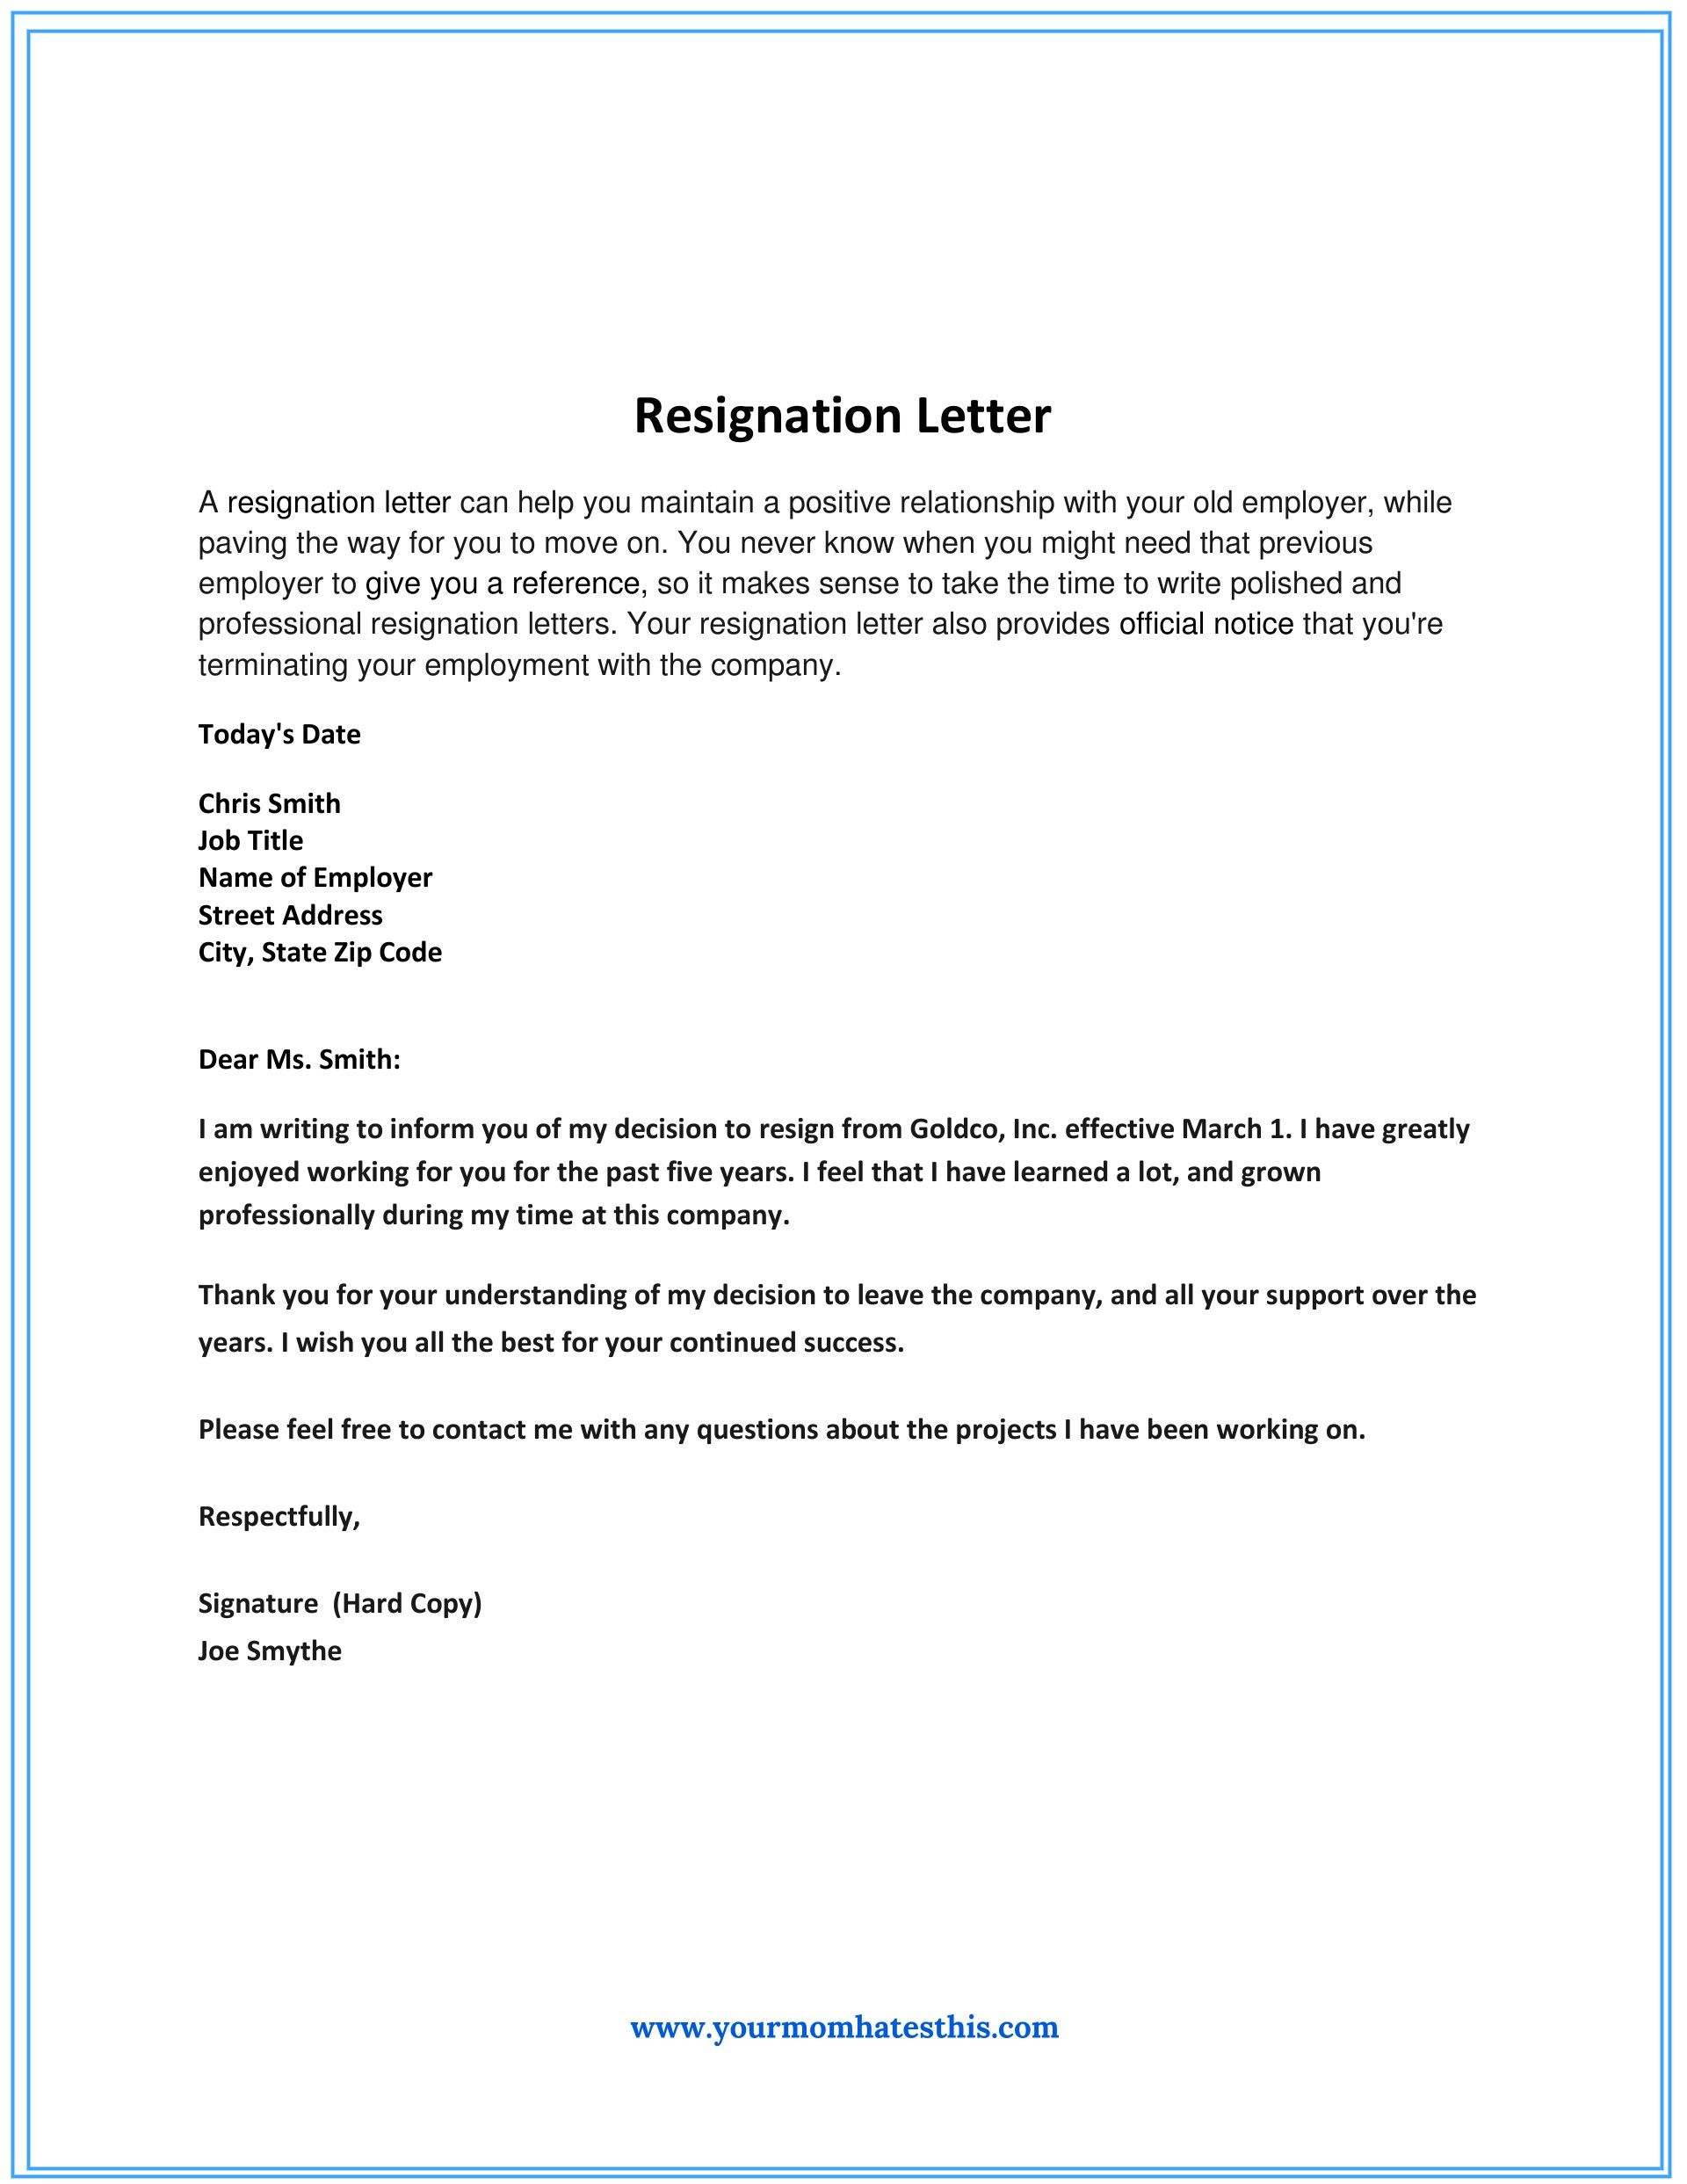 Resignation letter sample not good fit letters livecareer home resignation letter sample not good fit letters livecareer aljukfo Gallery